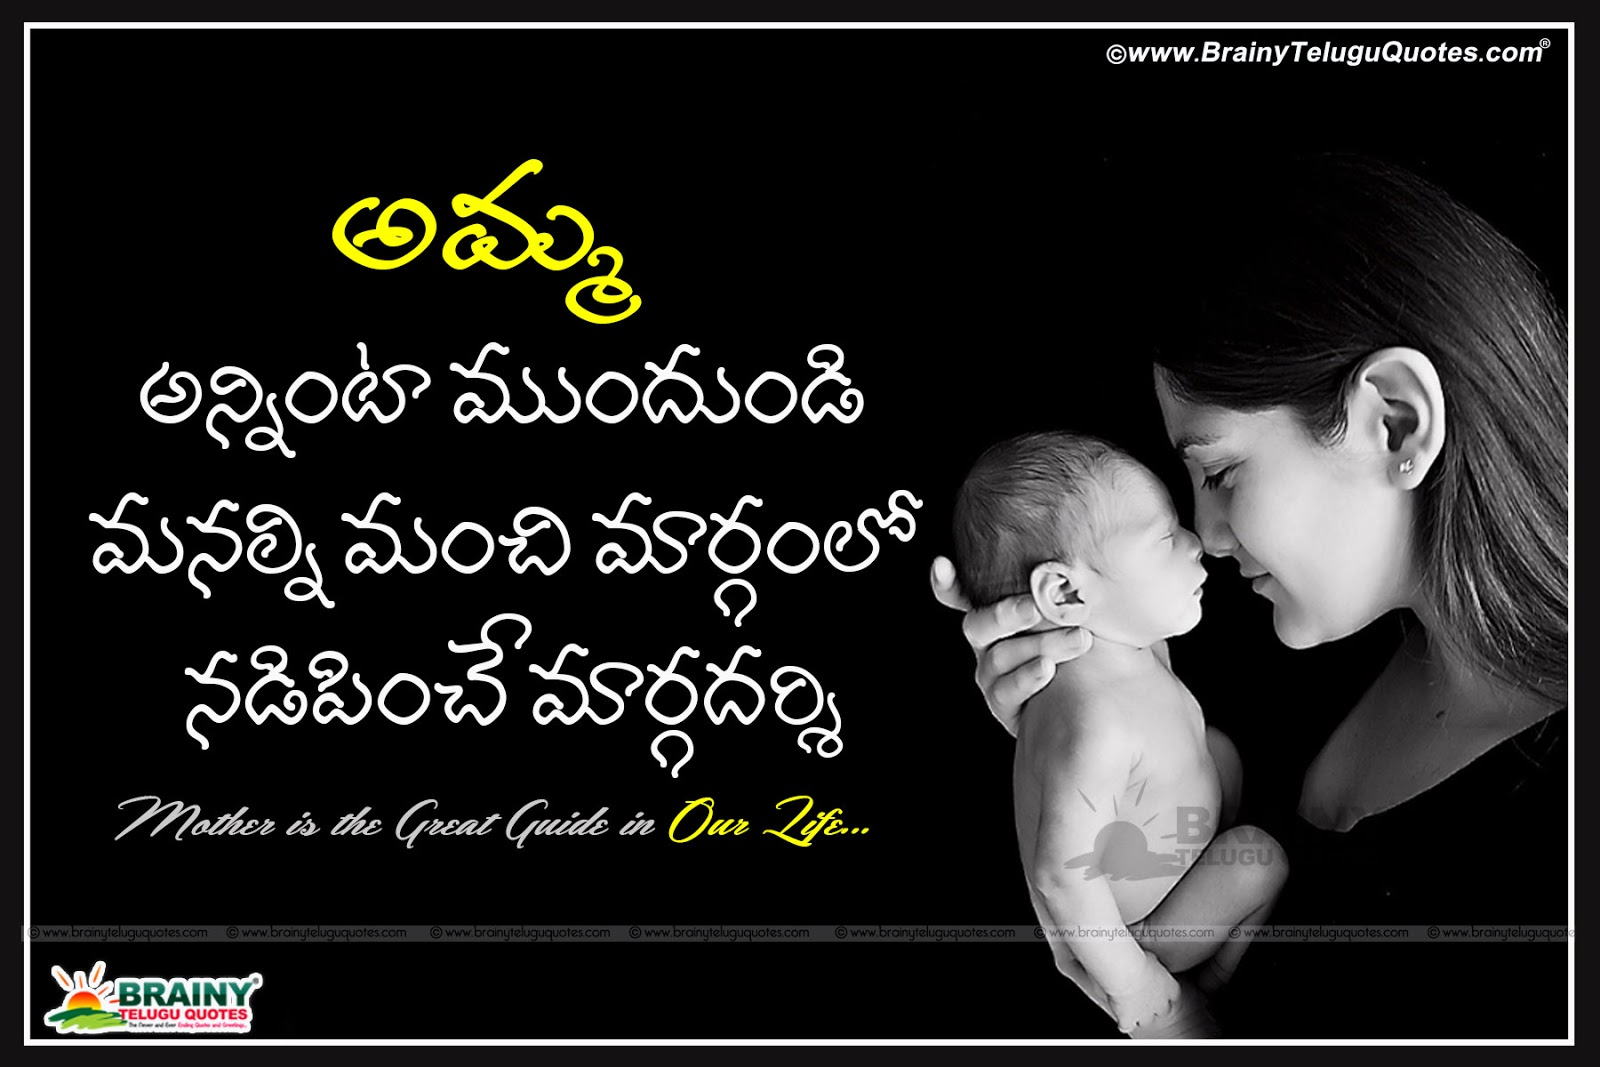 Heart Touching Mother Amma Love Quotations In Telugu With Mother And